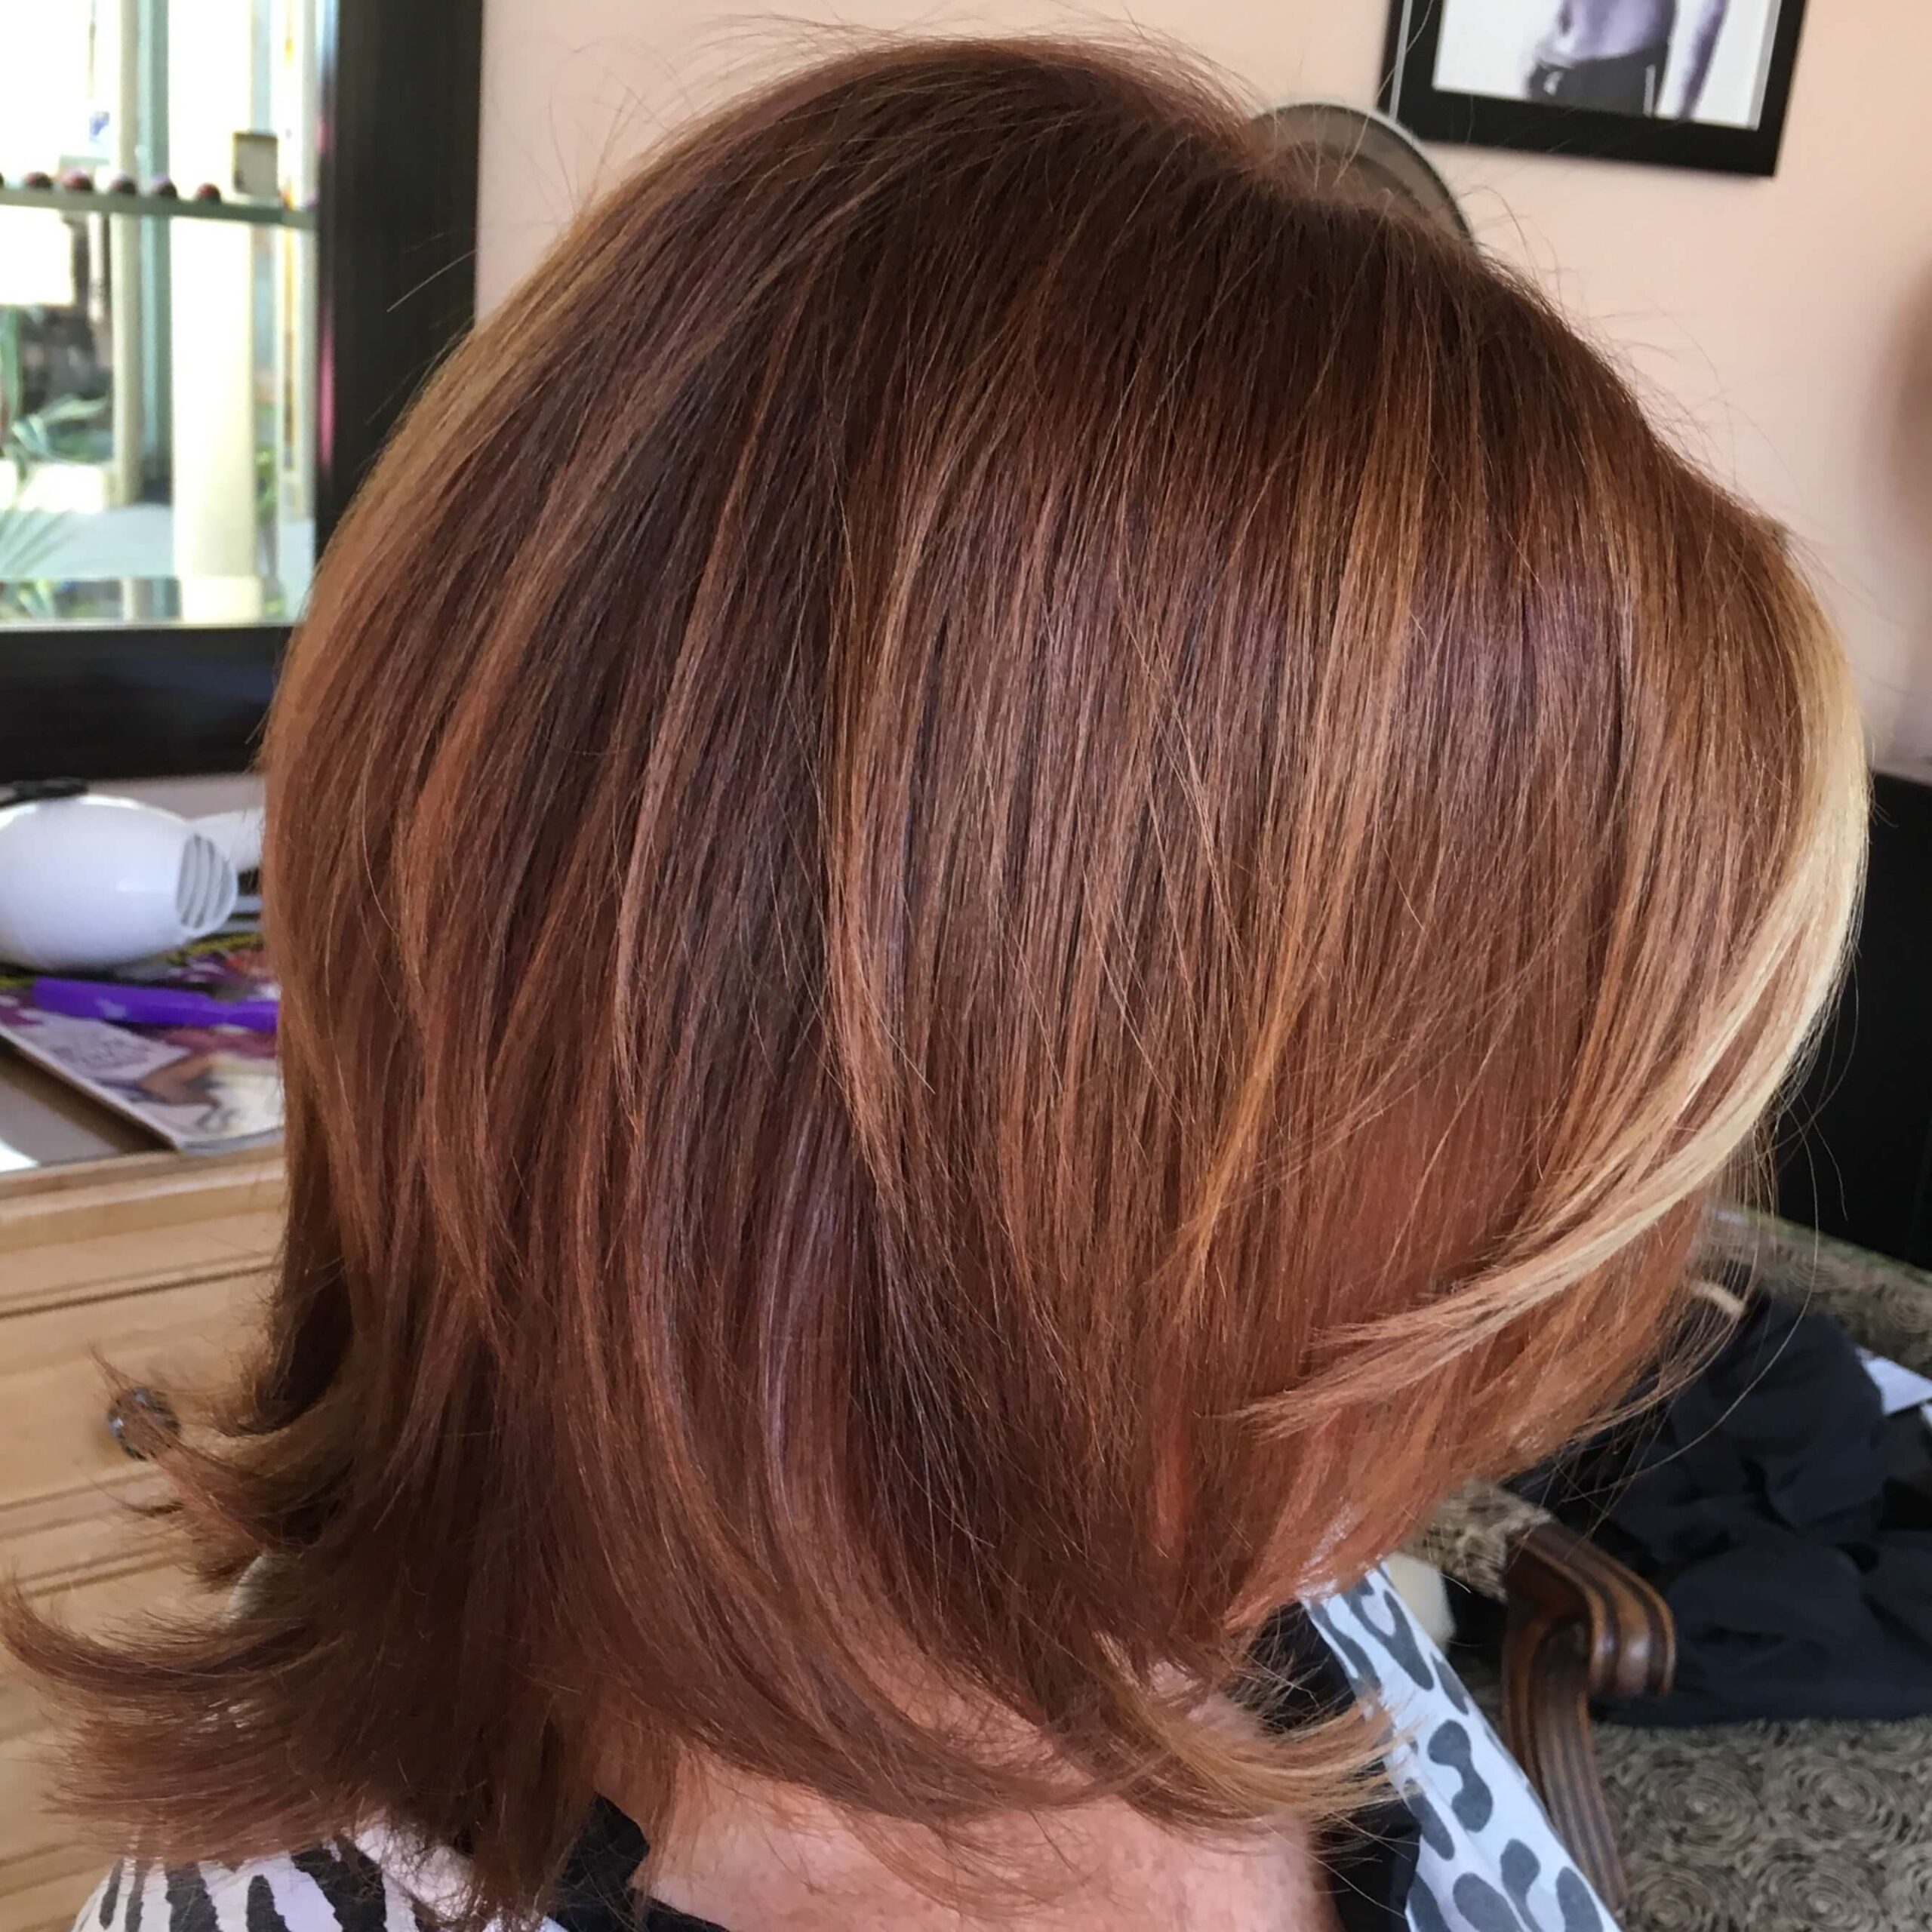 hair coloring sherman oaks, los angeles, Hair Colorist MJ Hair Designs and Ammonia-Free CØR.color